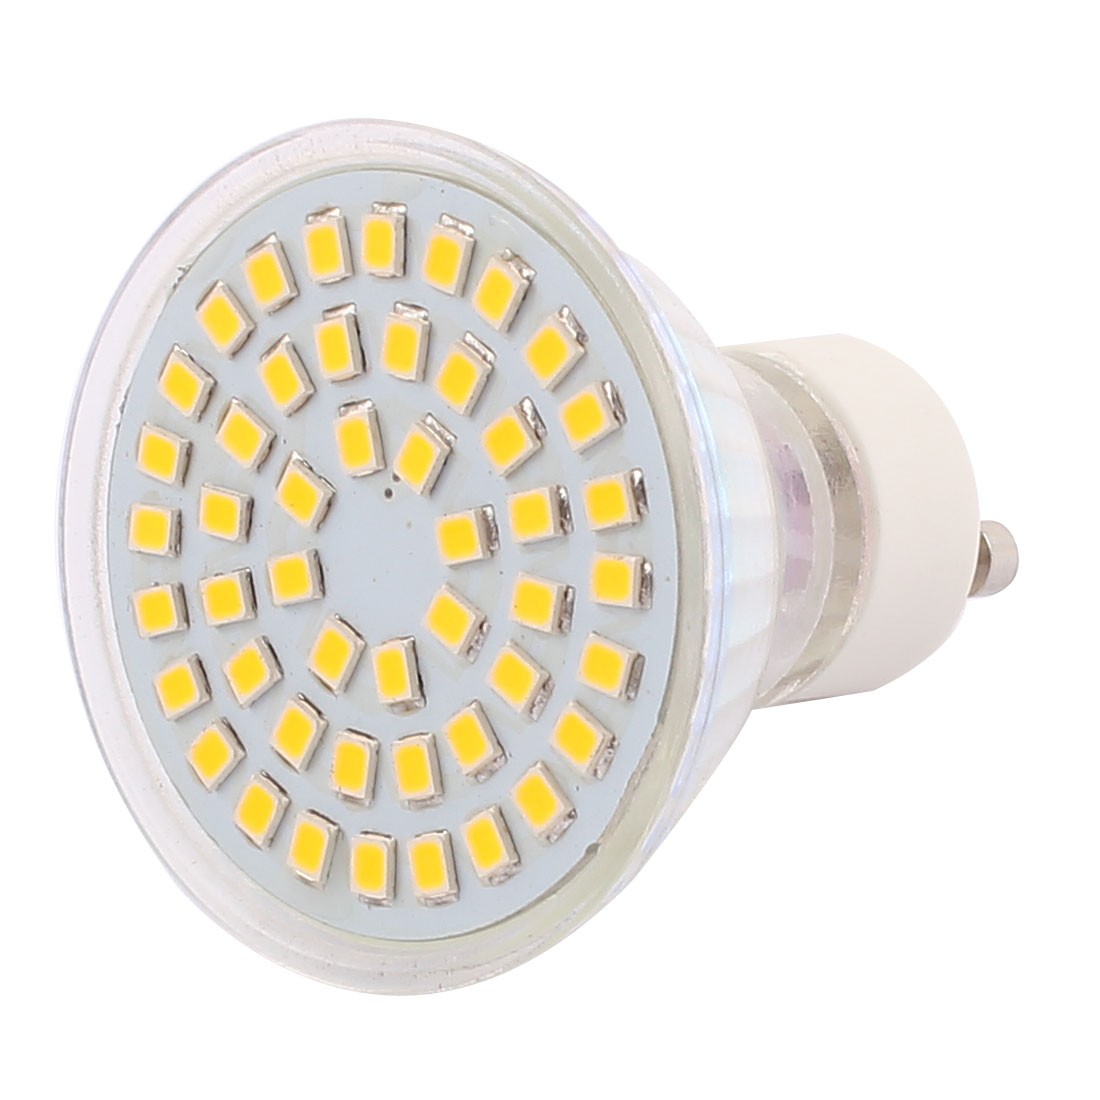 GU10 SMD 2835 48 LEDs Glass Energy-Saving LED Lamp Bulb Warm White AC 220V 4W